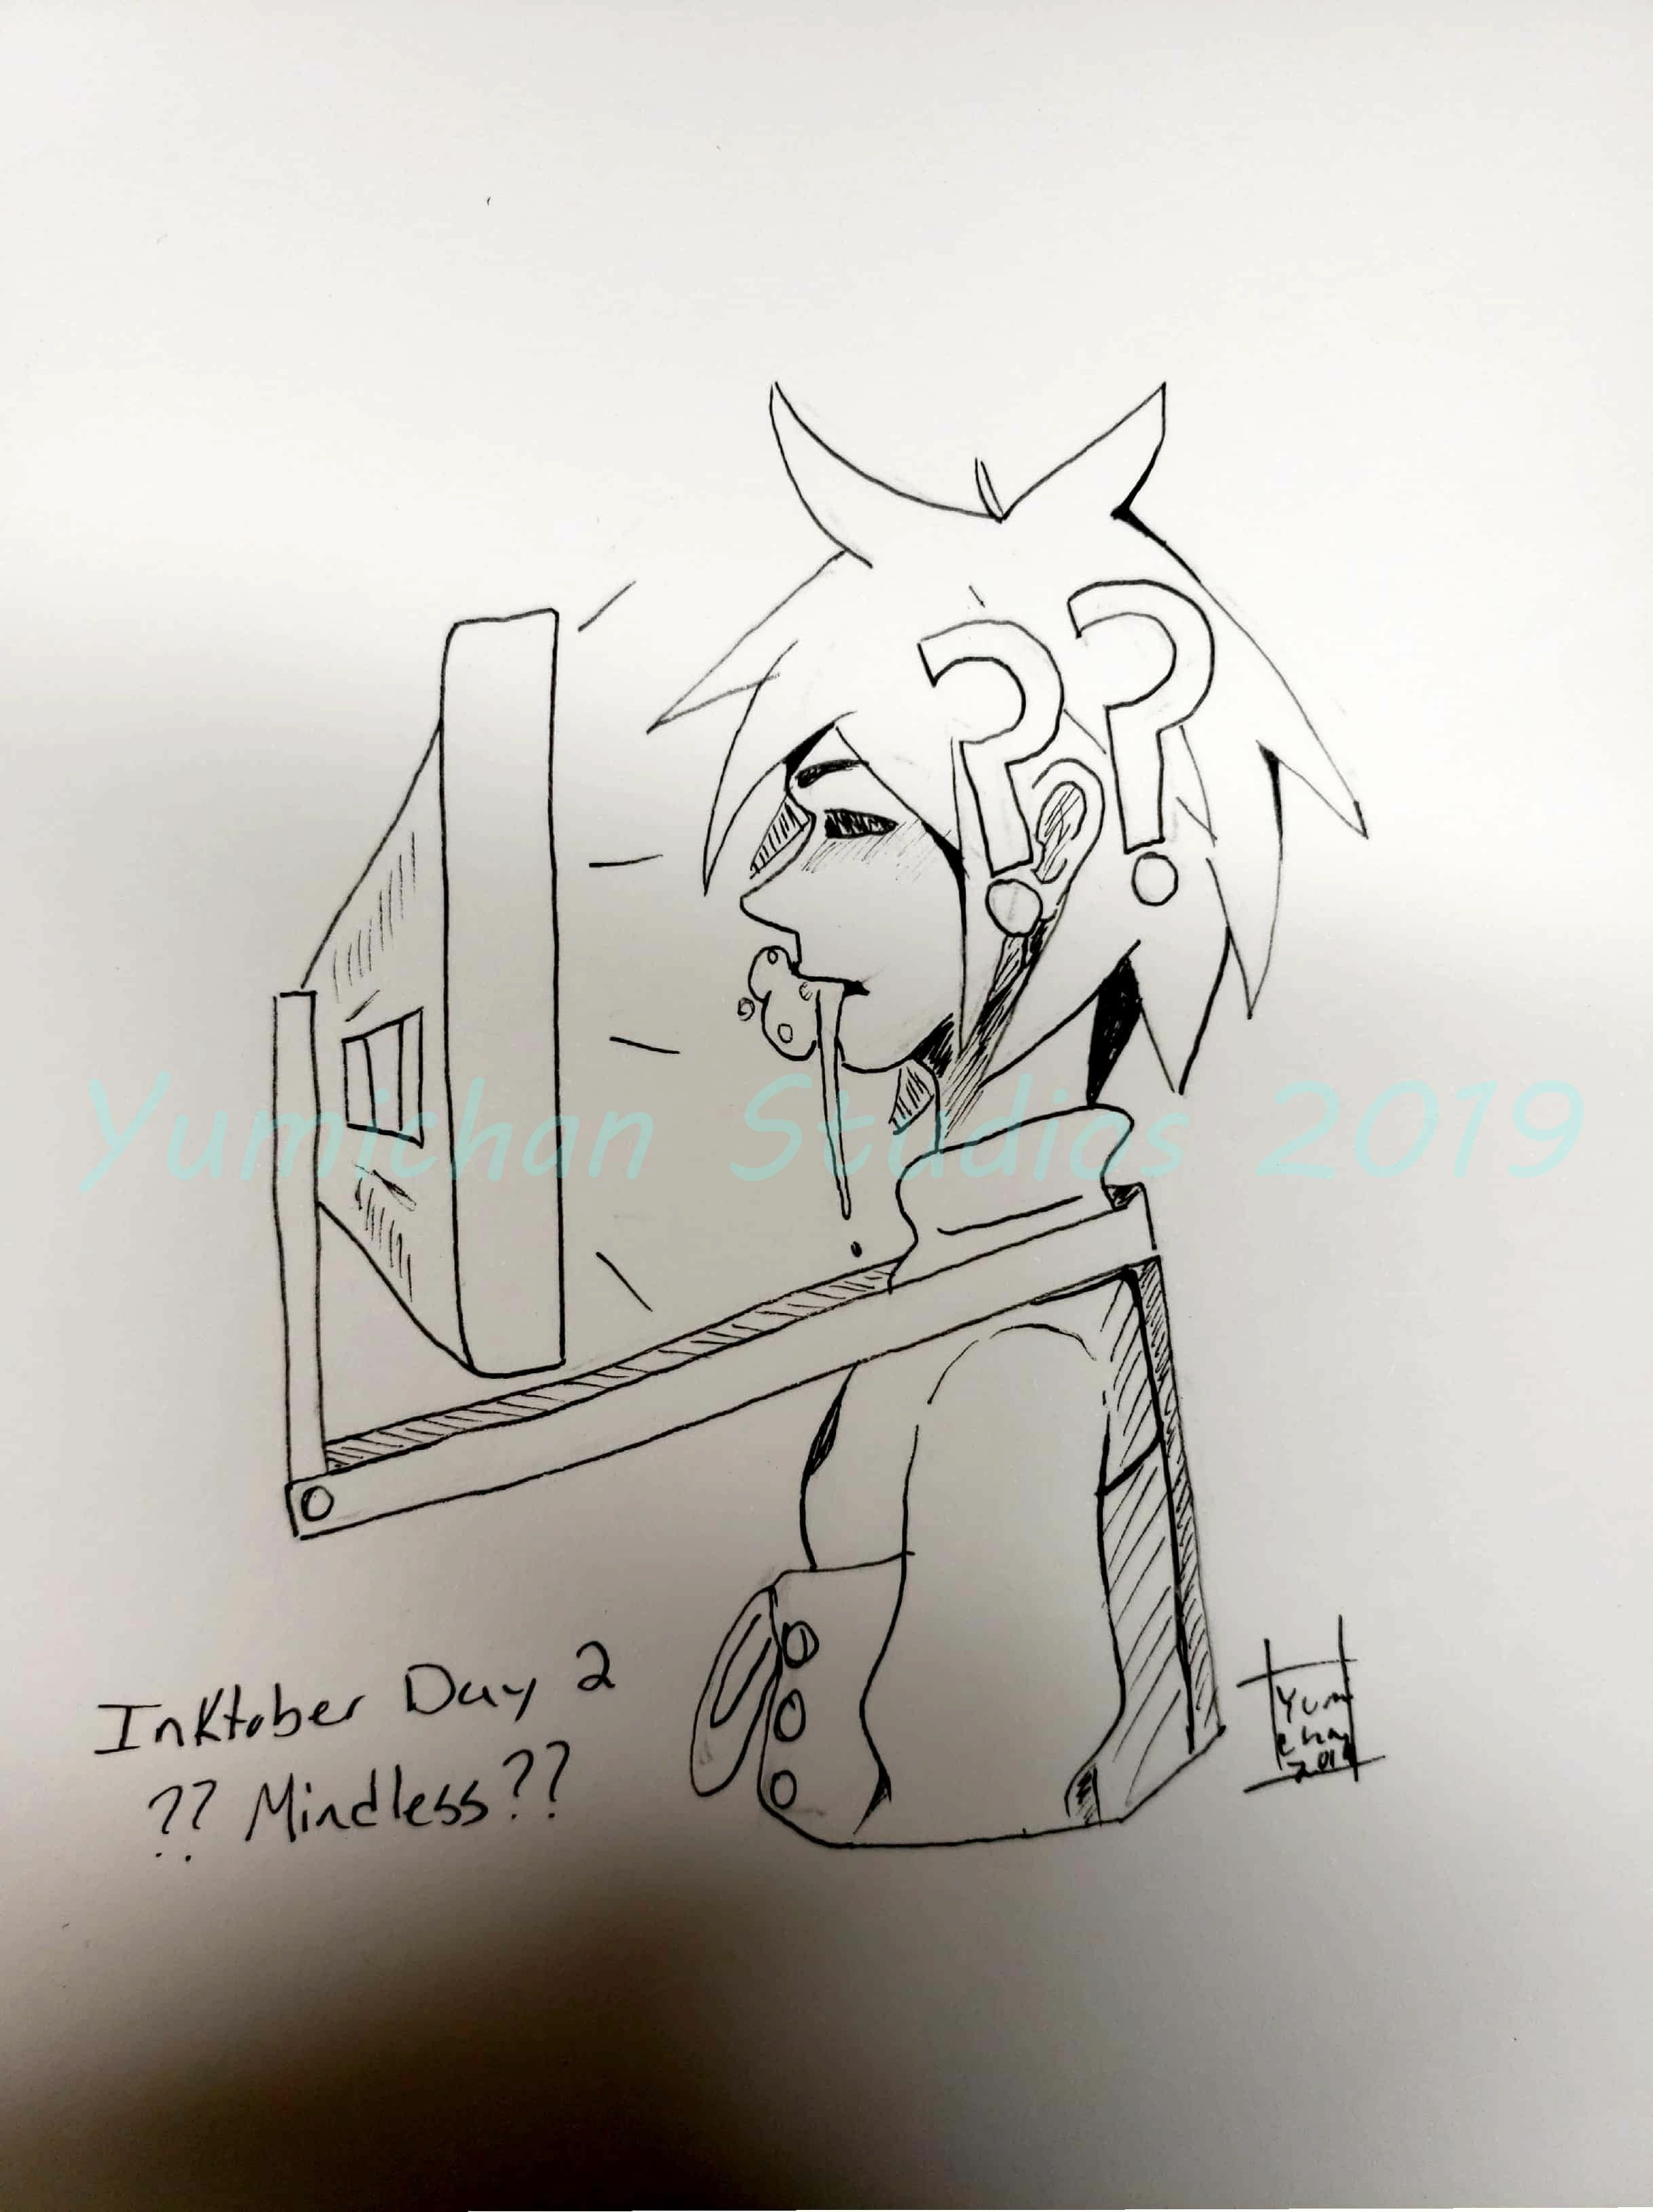 Inktober Day 2 Mindless By Yumichanstudios On Newgrounds